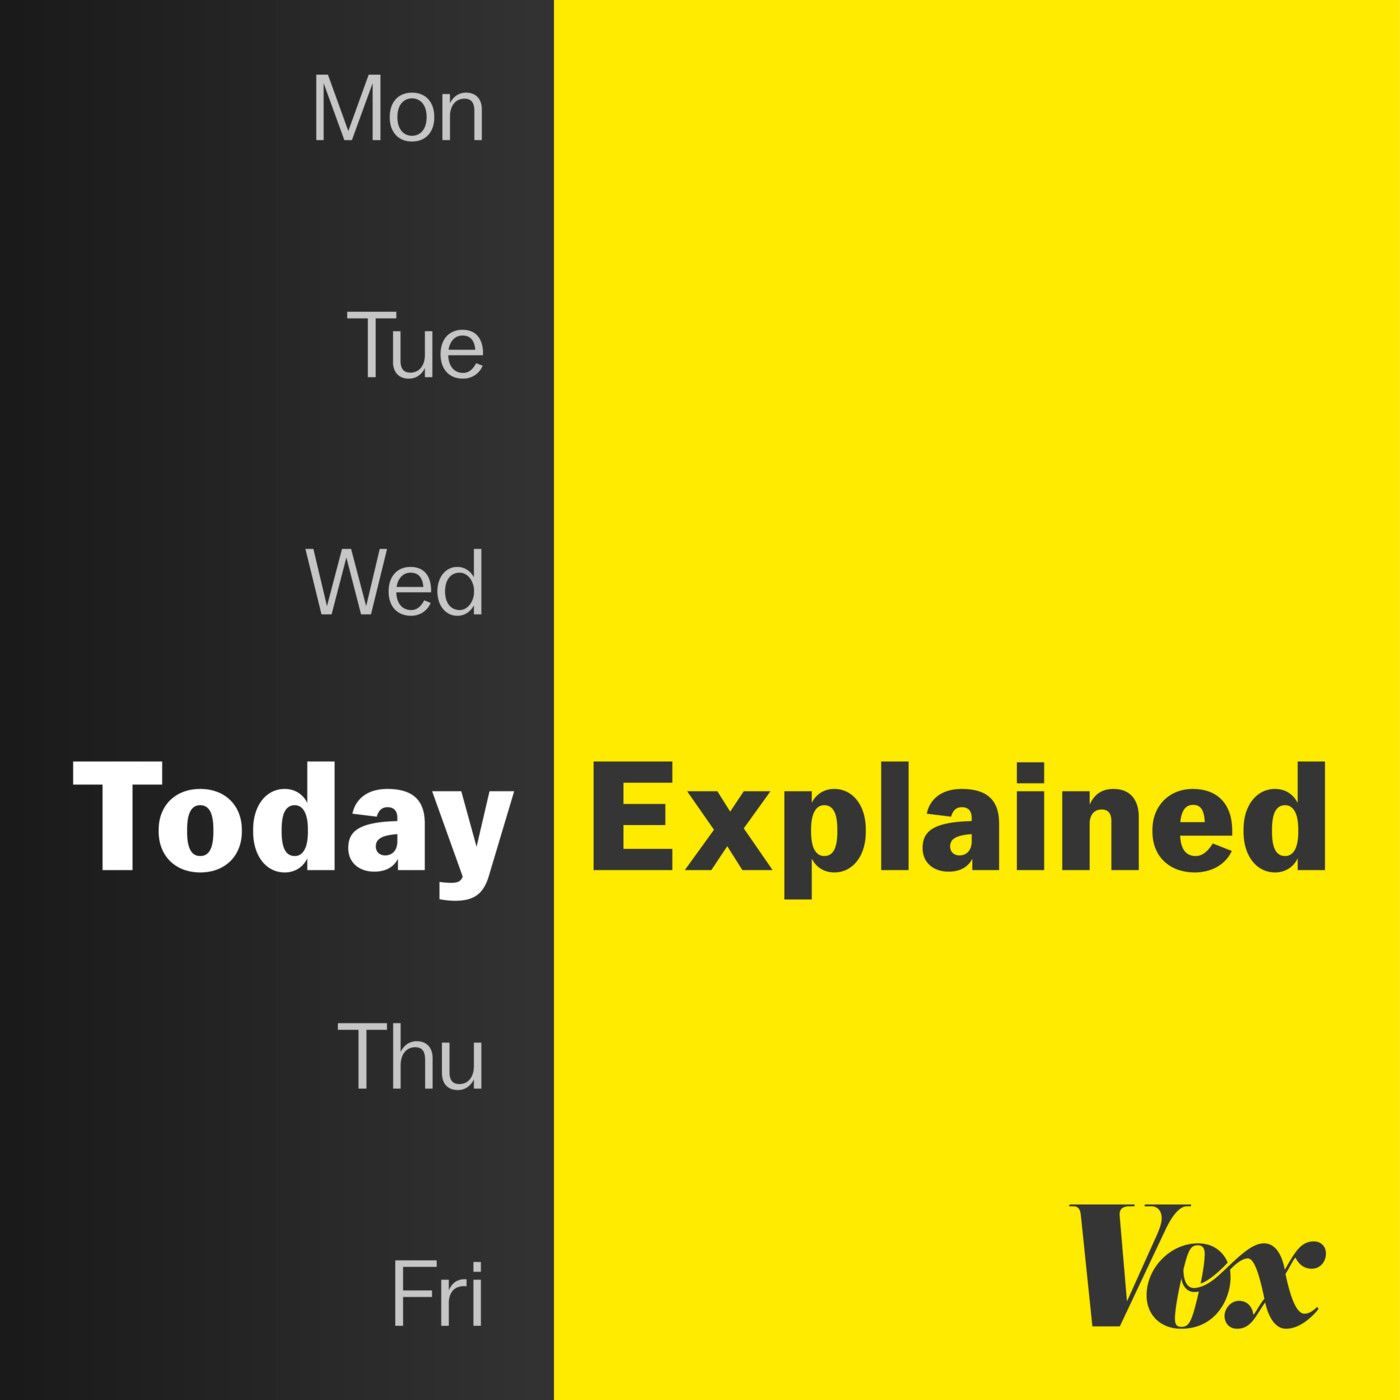 Two days, Explained